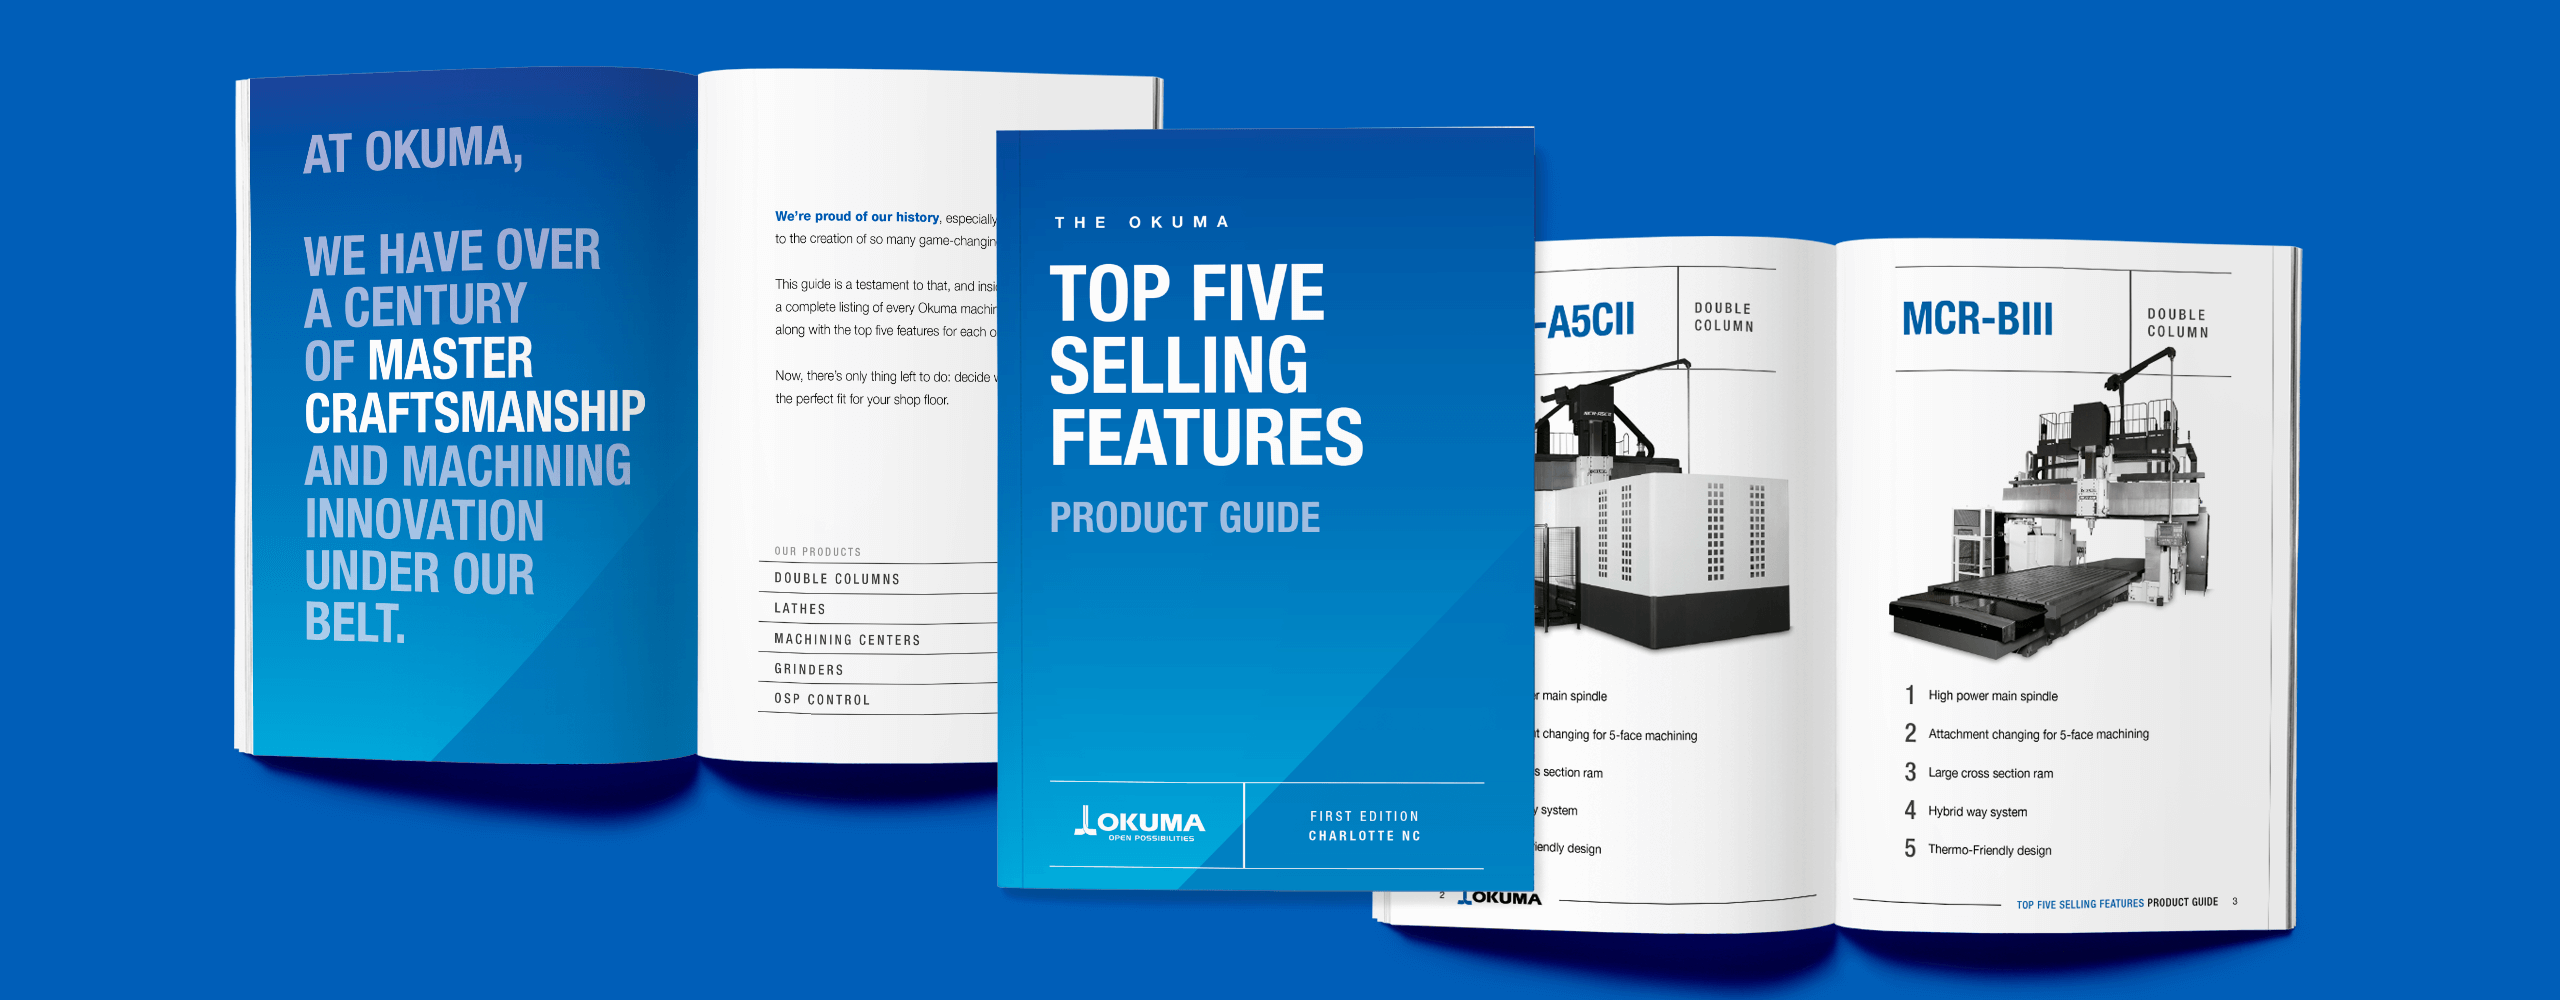 Okuma Top5 Brochures